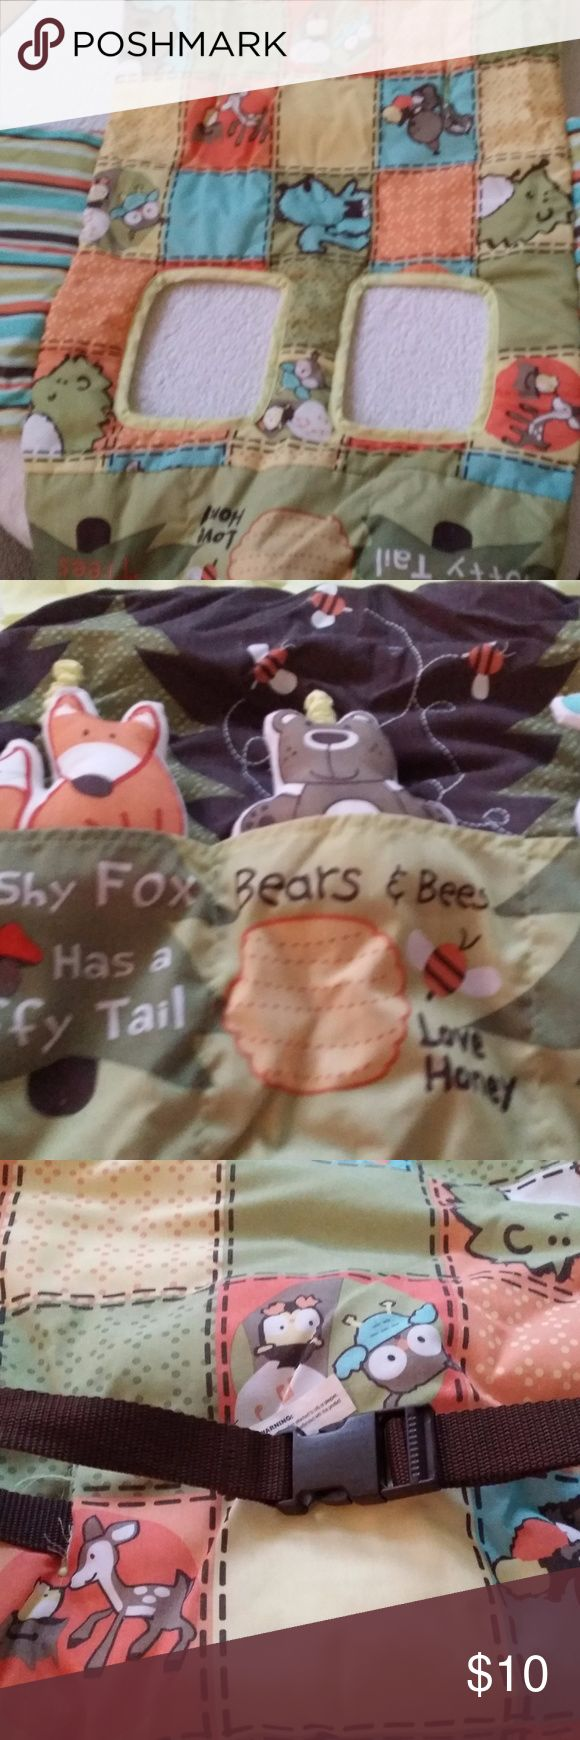 Woodland Friends Shopping Cart Cover Shopping cart cover to protect your little one from germy and grimey shopping carts. Cover drapes over the four sides of the cart and secures with velcro. Stuffed owl, fox and bear provides your little one entertainment while you get your shopping done. When not in use, the stuffed animals slide right into their little pocket home. Comes with nylon strap with buckle to secure your little one in the shopping cart.  Has been used and washed several times…